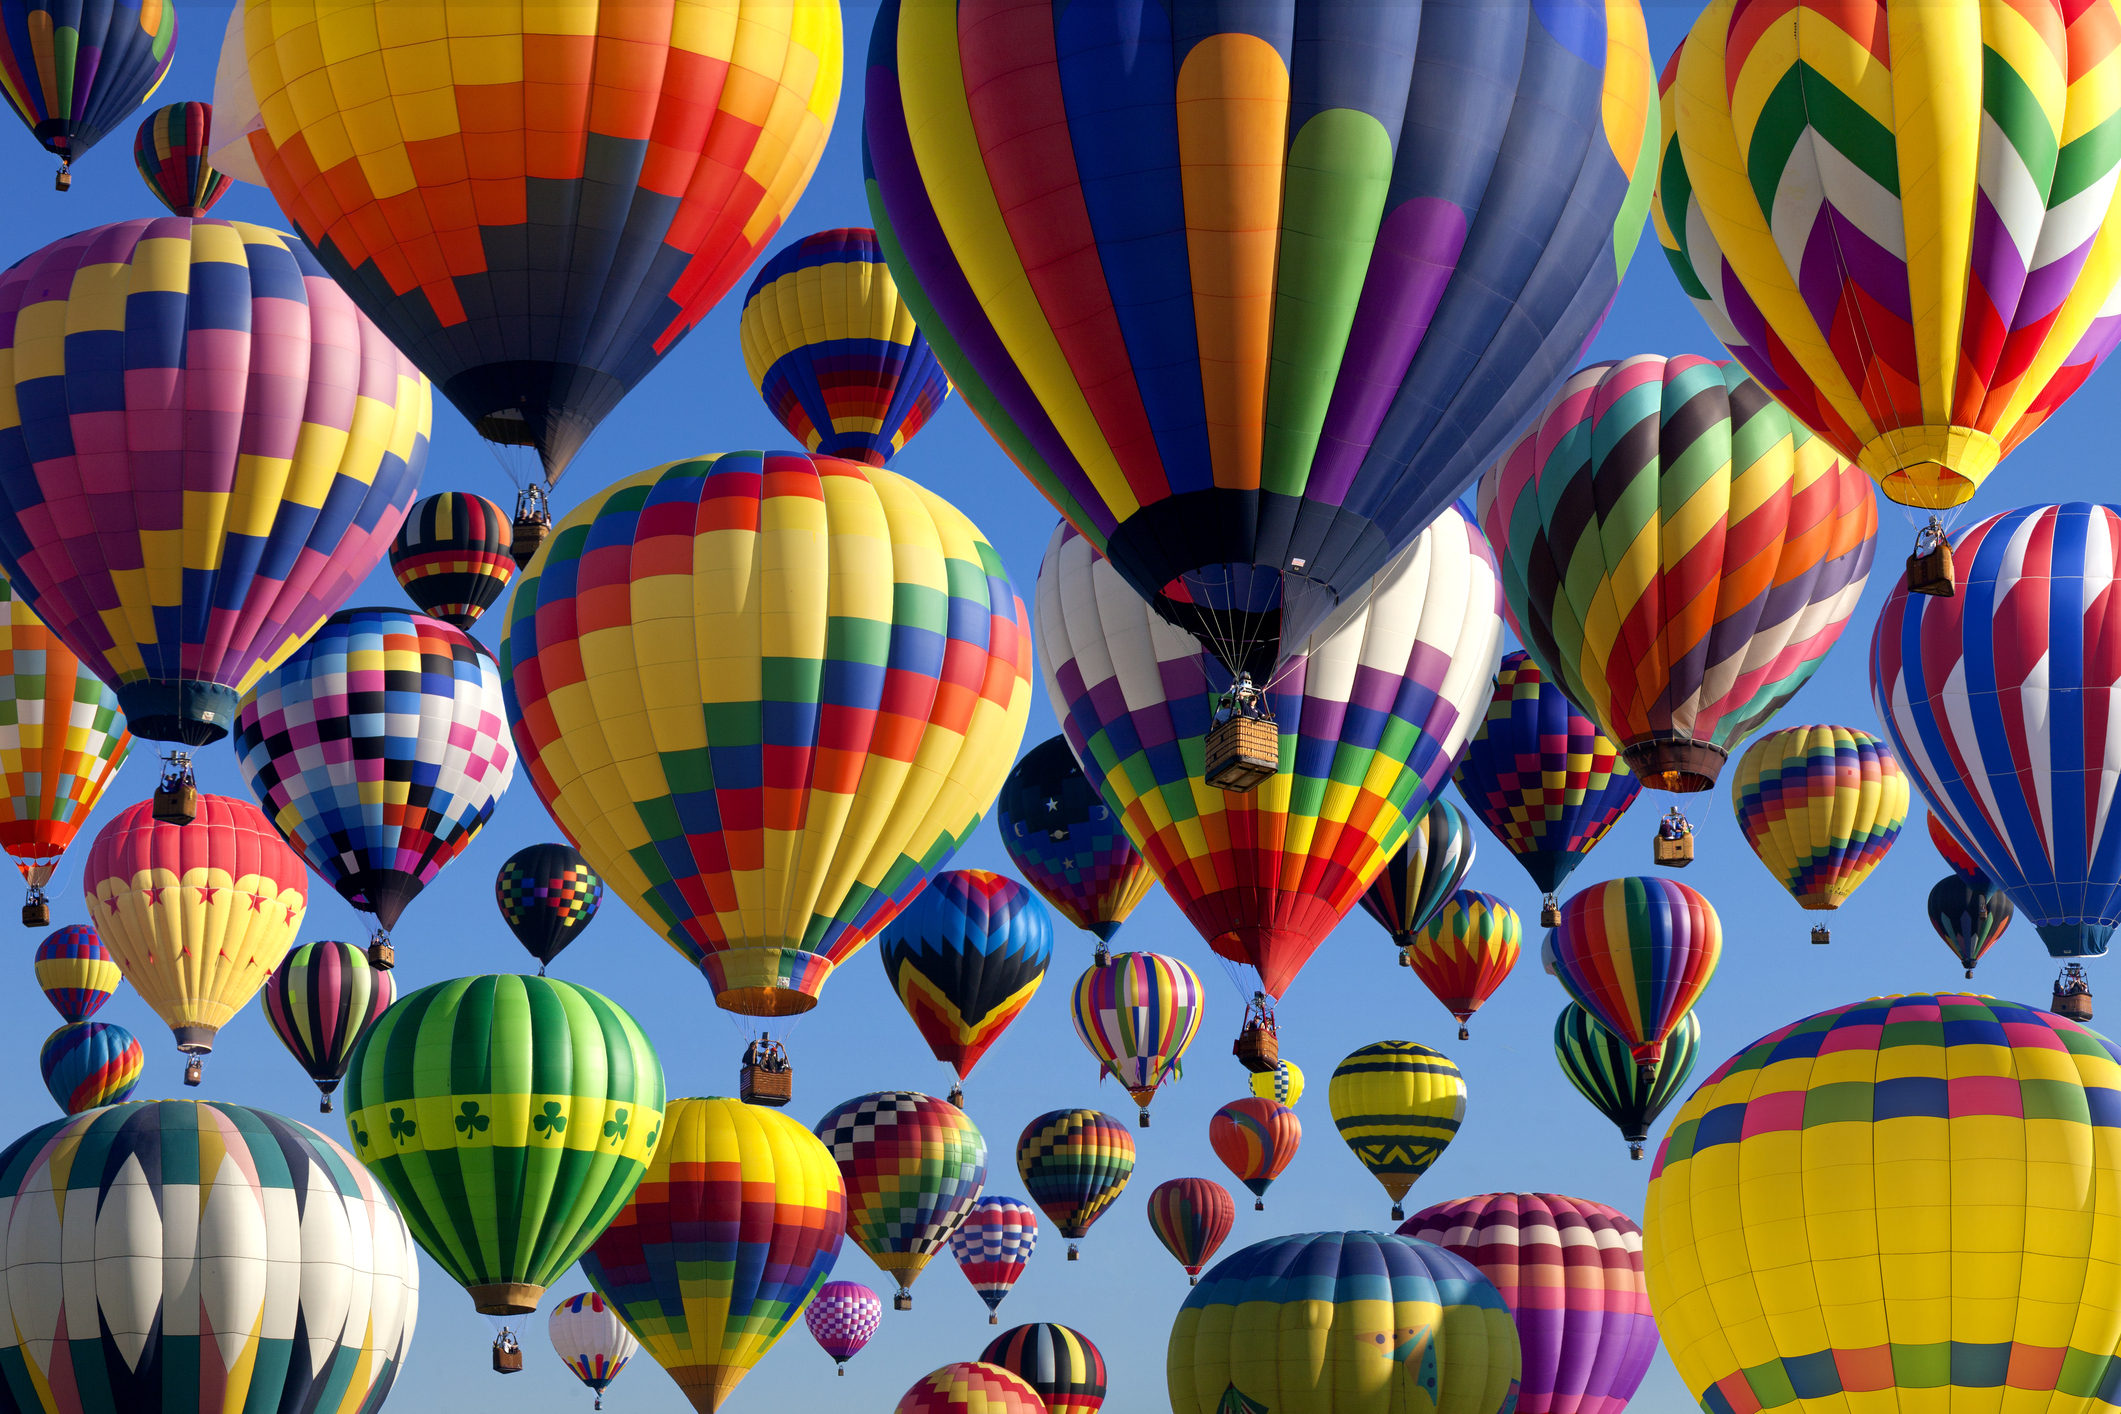 The albuquerque international balloon fiesta is one of the best events in the state el